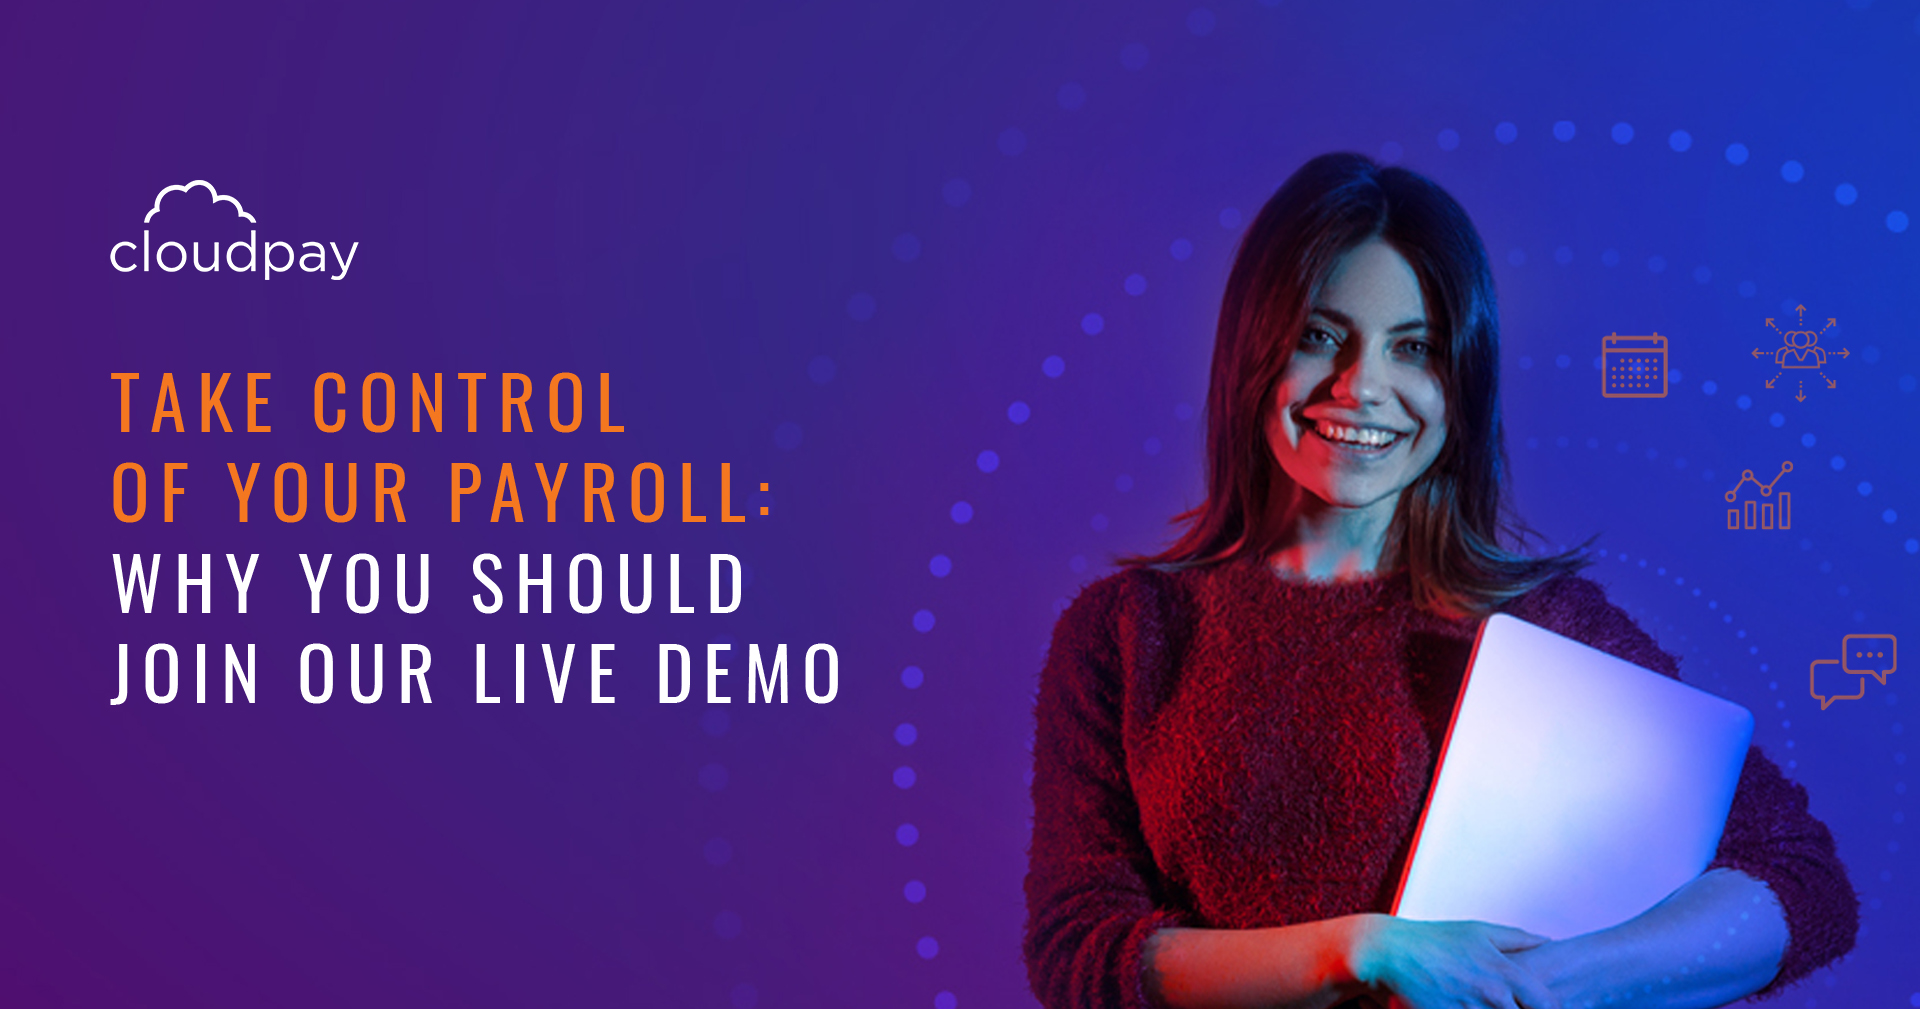 3 Reasons To Take Control of Your Payroll: Why You Should Join Our Live Demo